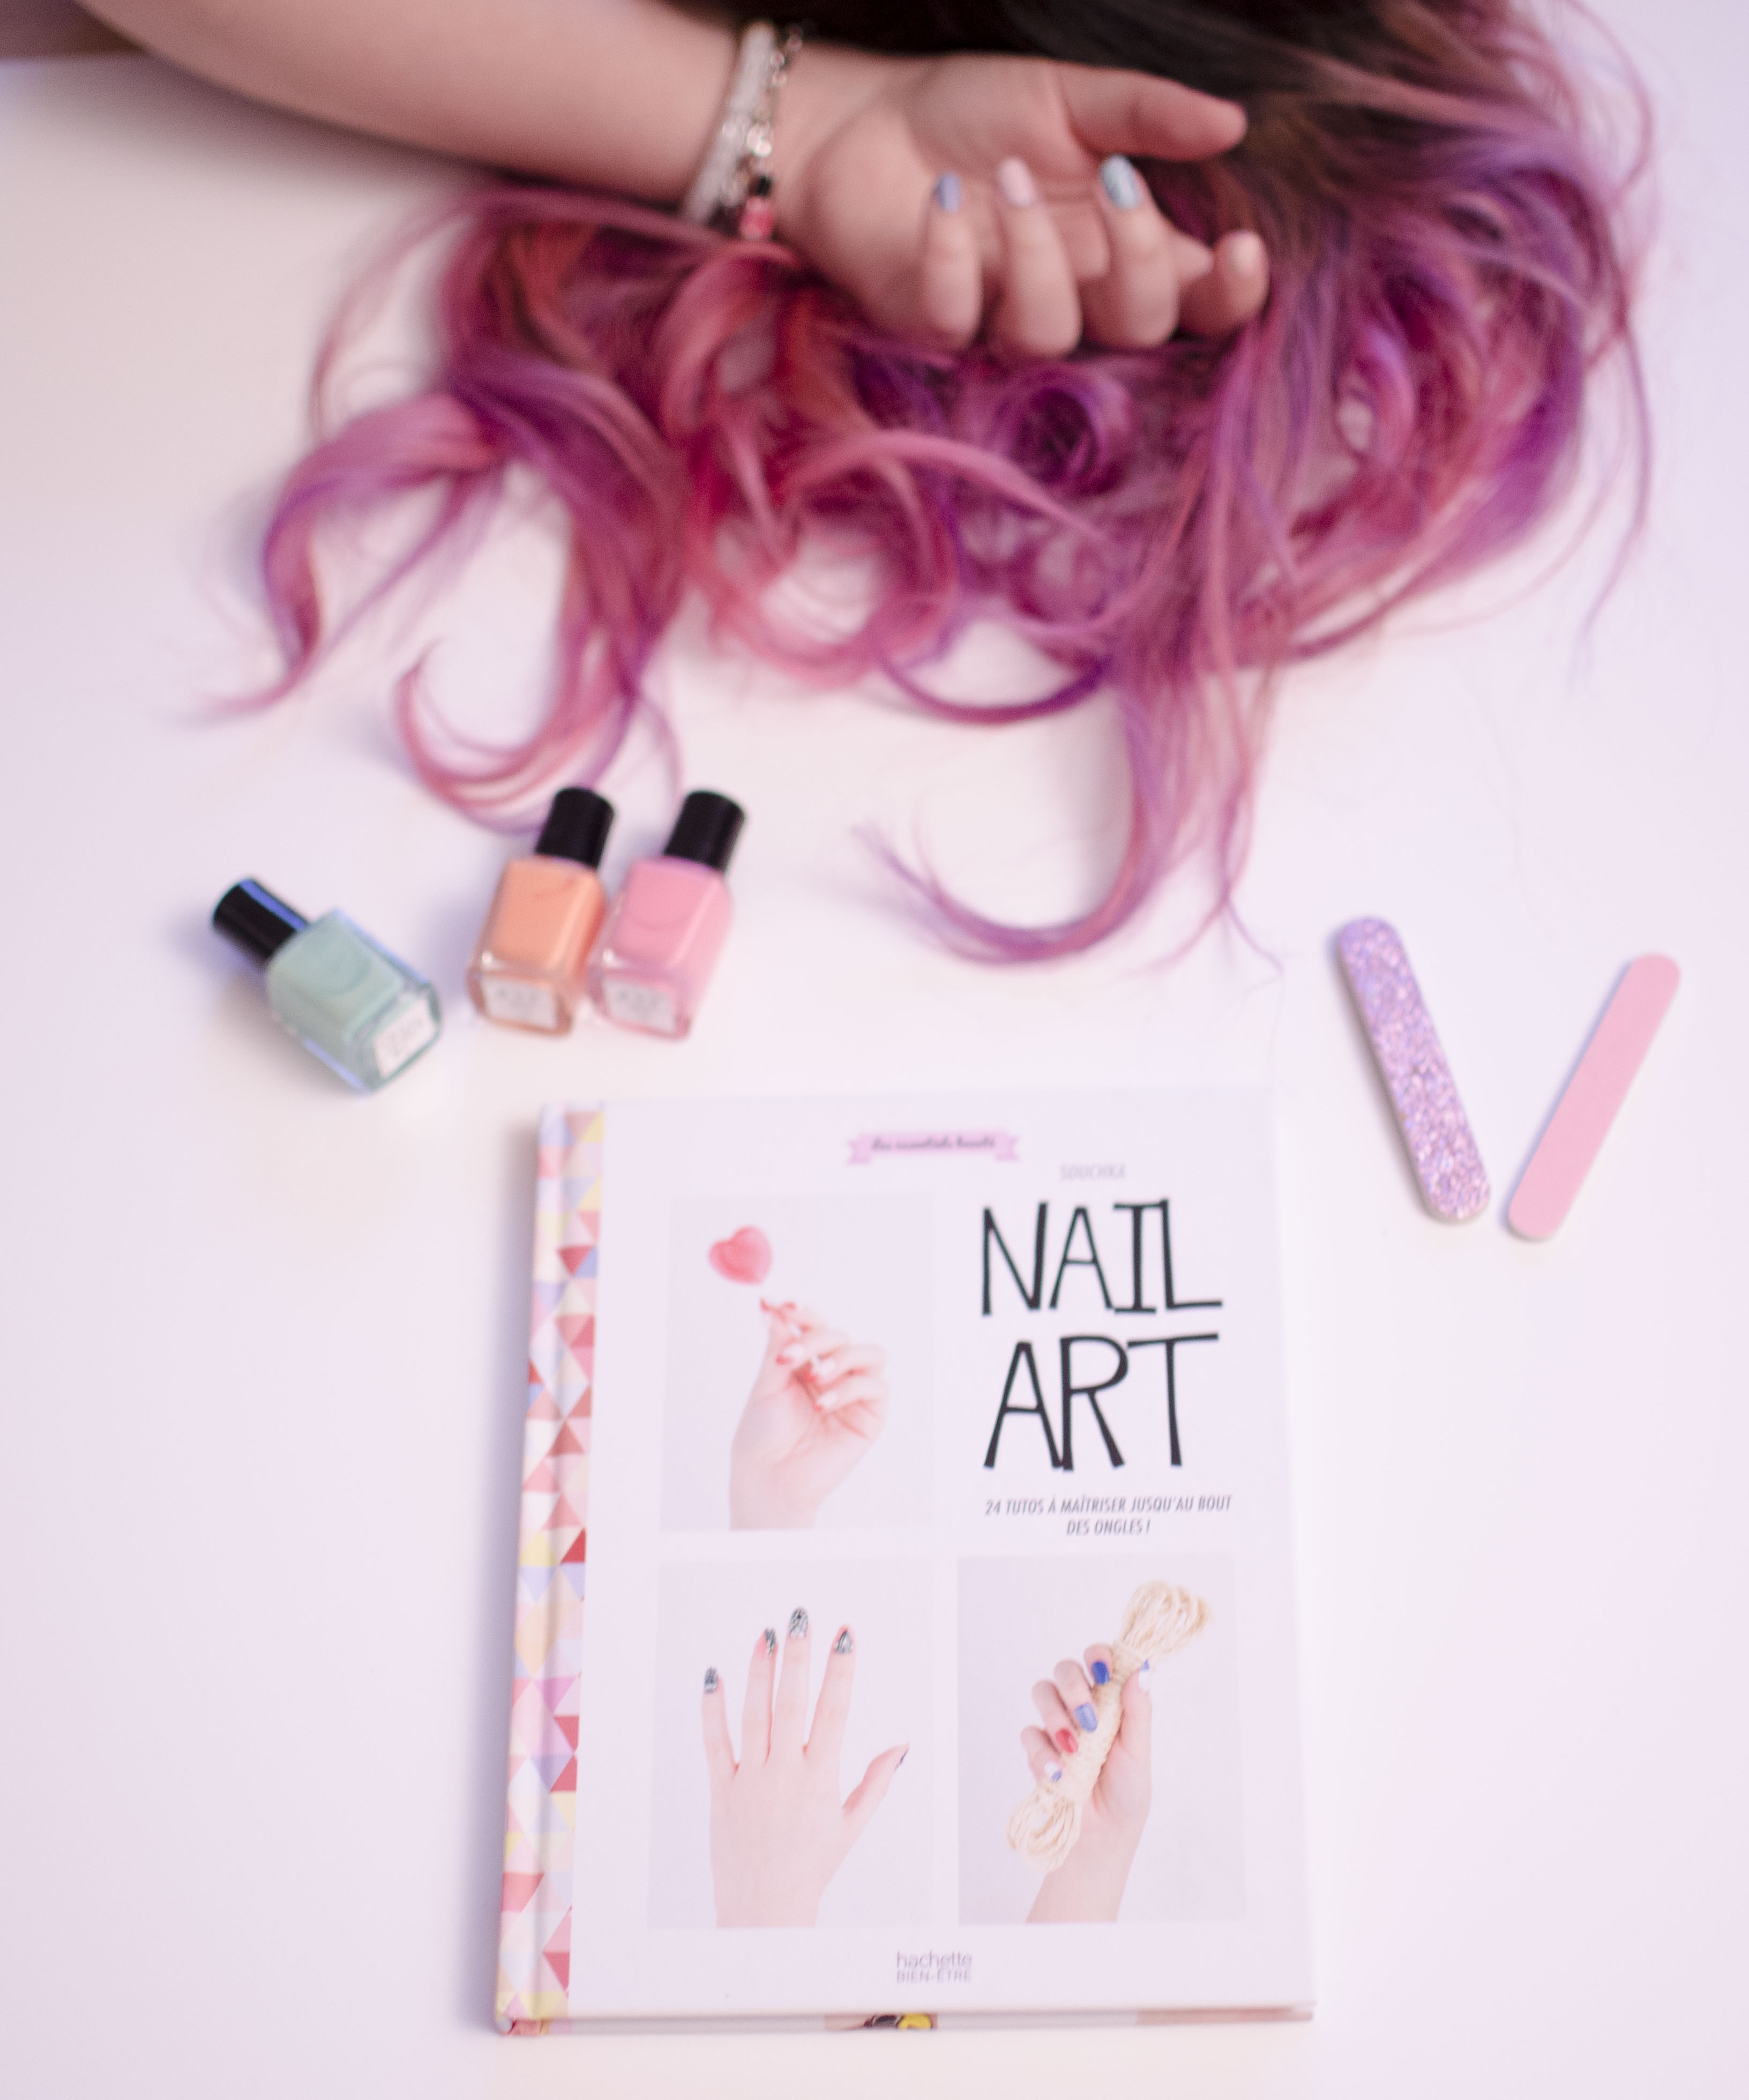 nail art souchka book pink hair